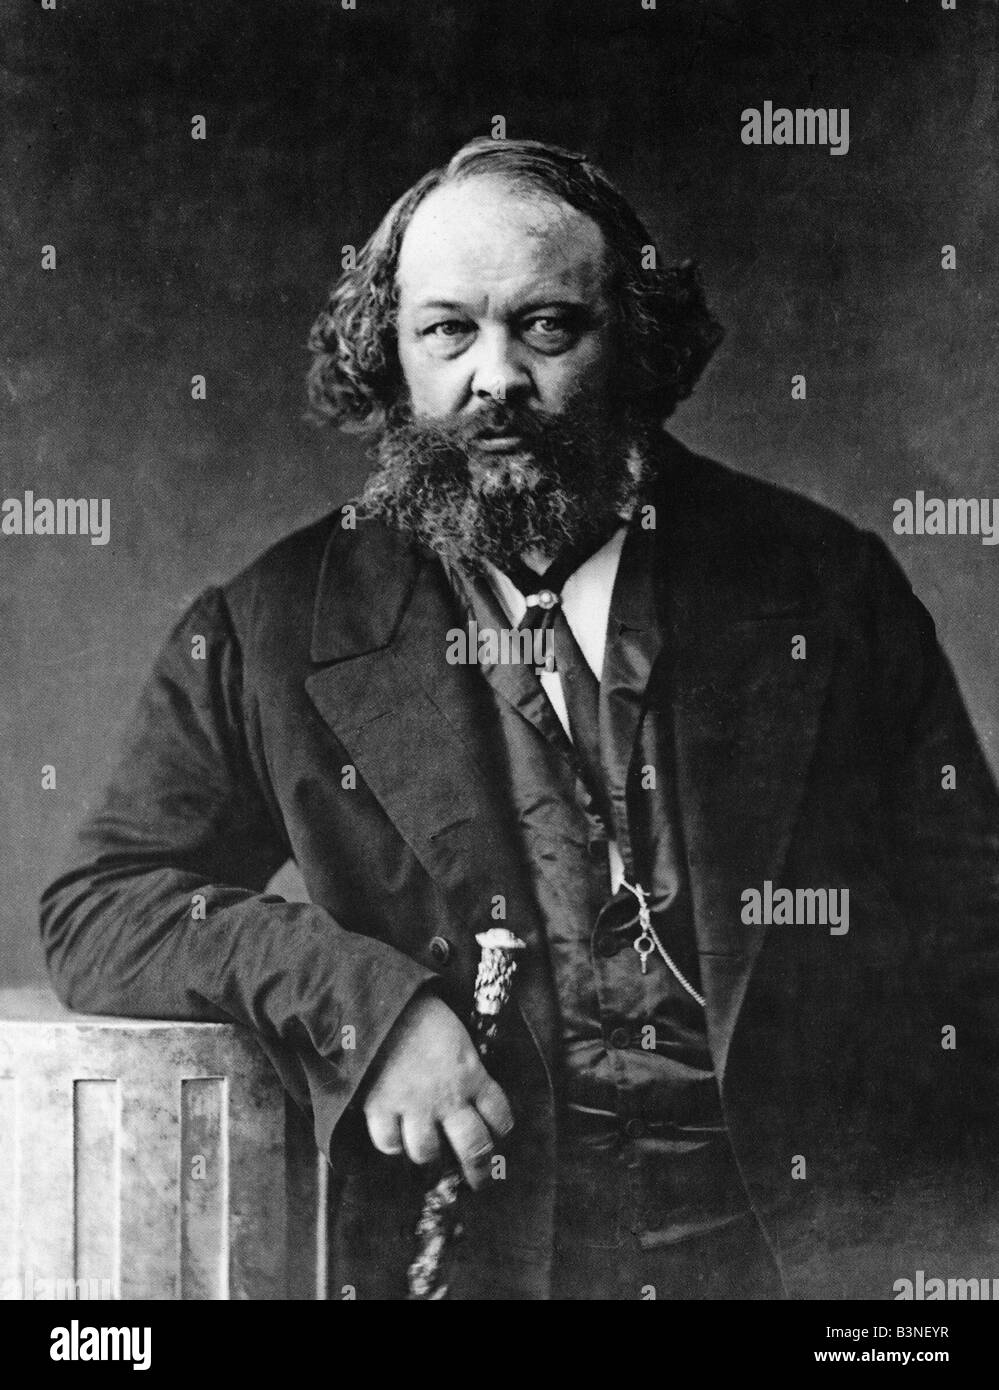 MIKHAIL BAKUNIN Russian revoluionary about 1862 - Stock Image